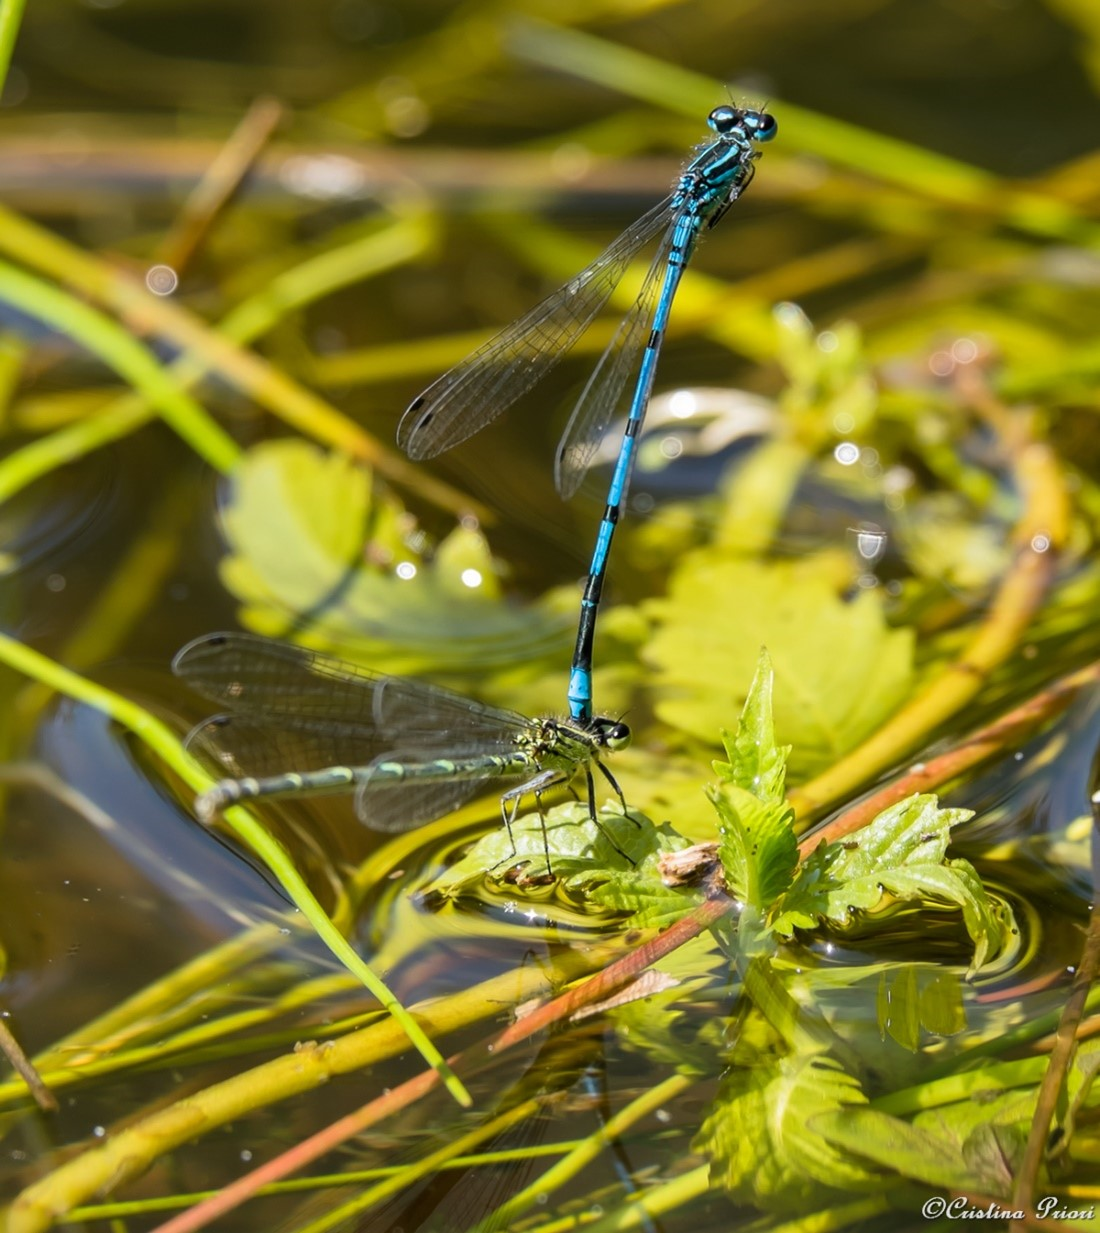 Mating couple of Blue Damselfly in a pond at Berengrave Nature Reserve - Rainham.